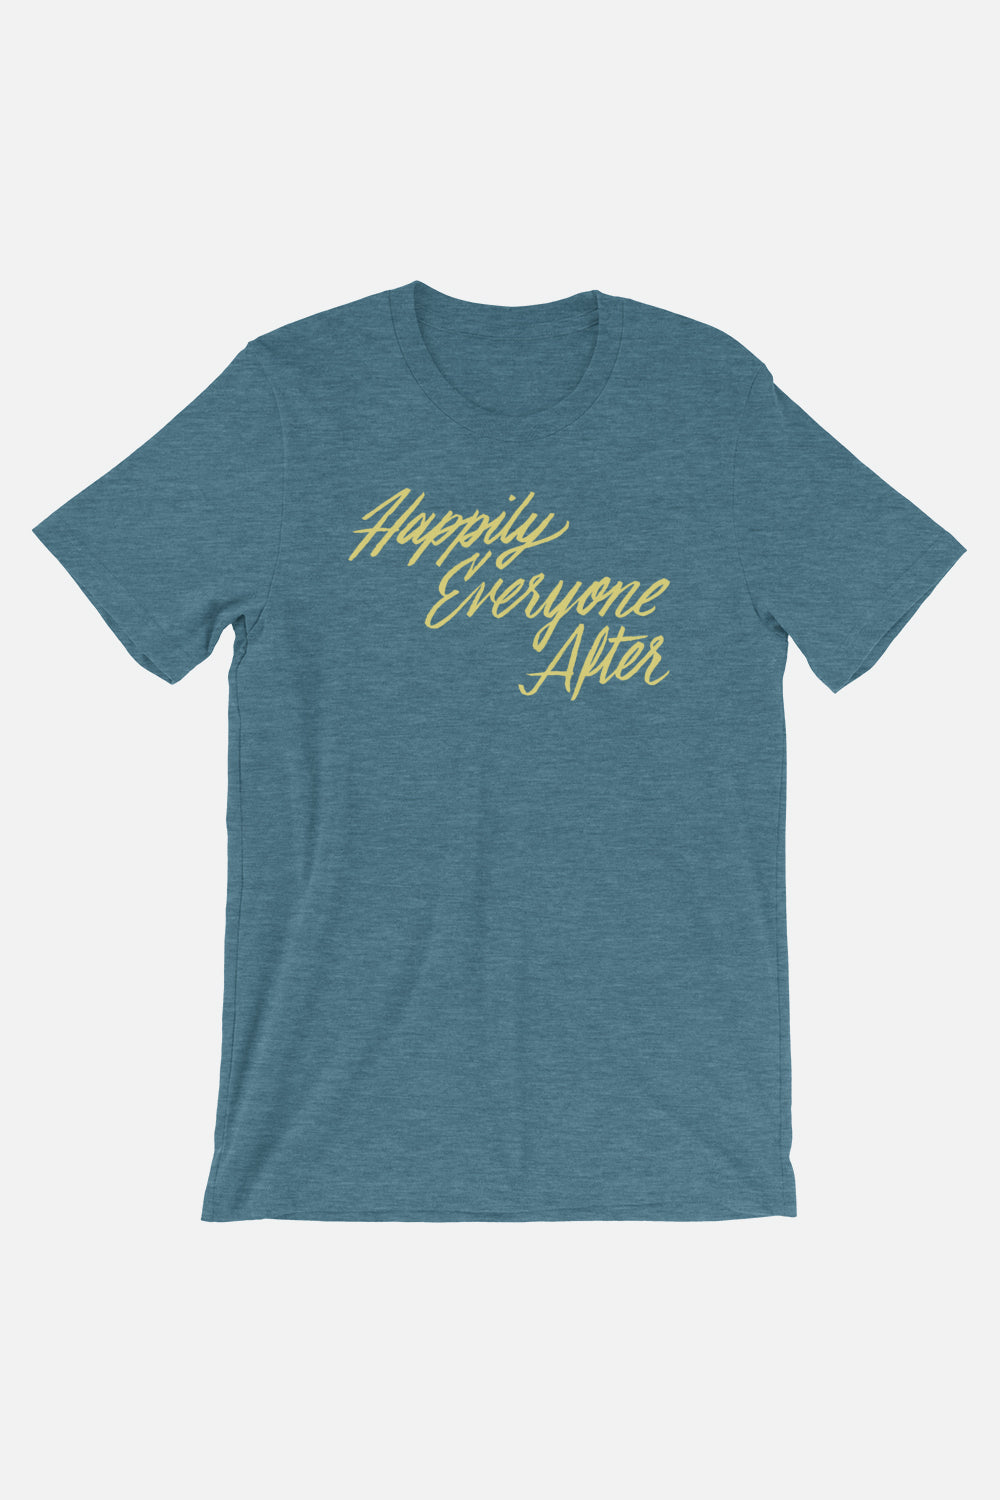 Happily Everyone After Unisex T-Shirt | Sarah MacLean